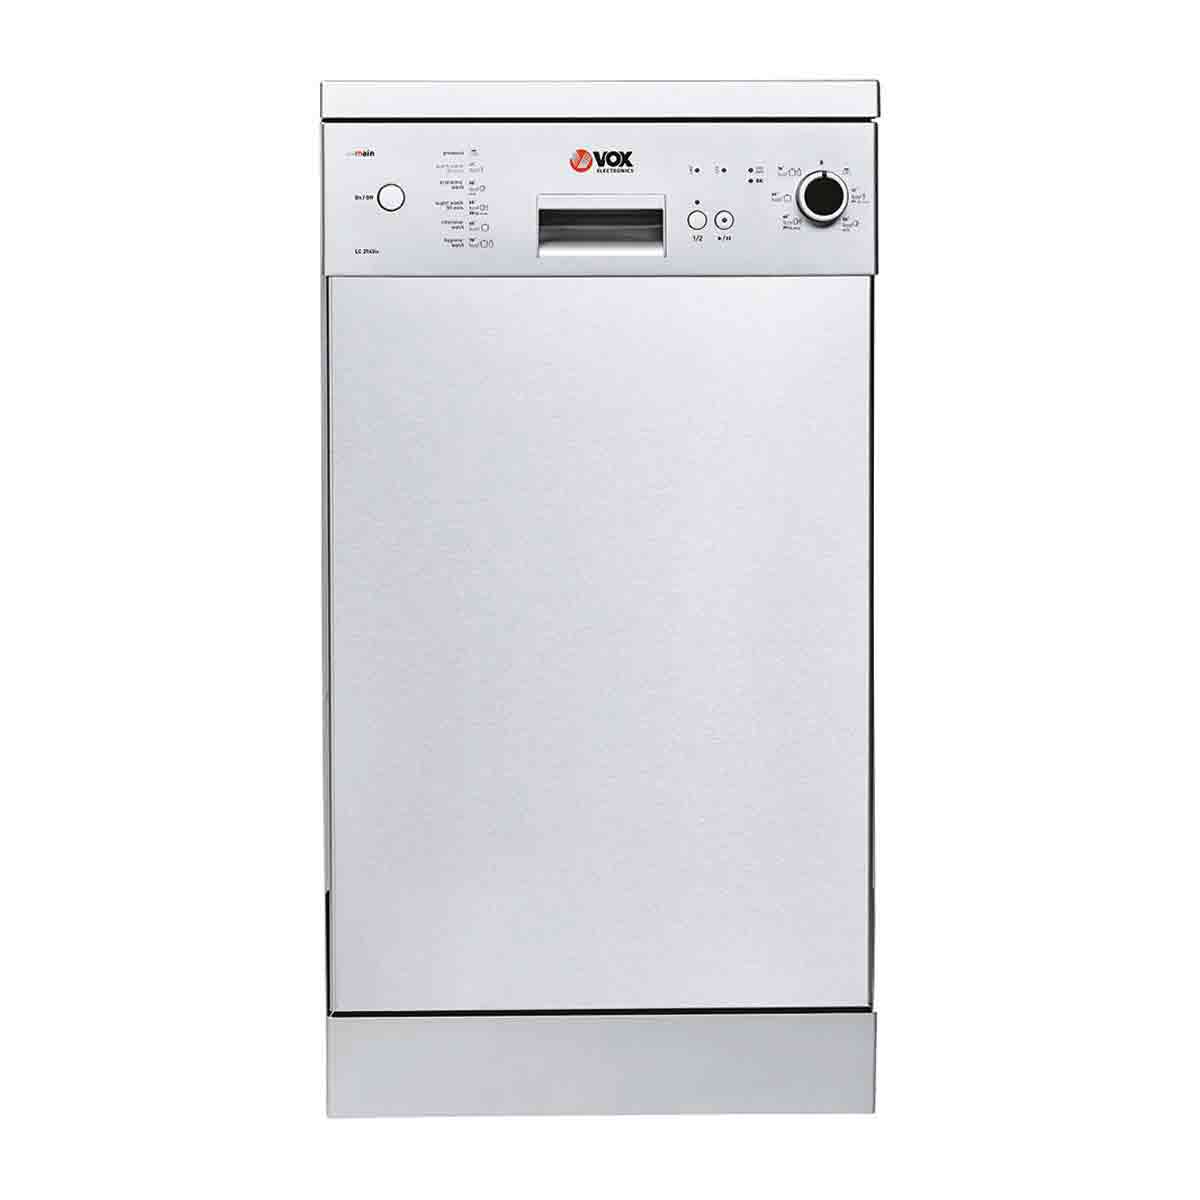 Dishwasher LC 2145 IX